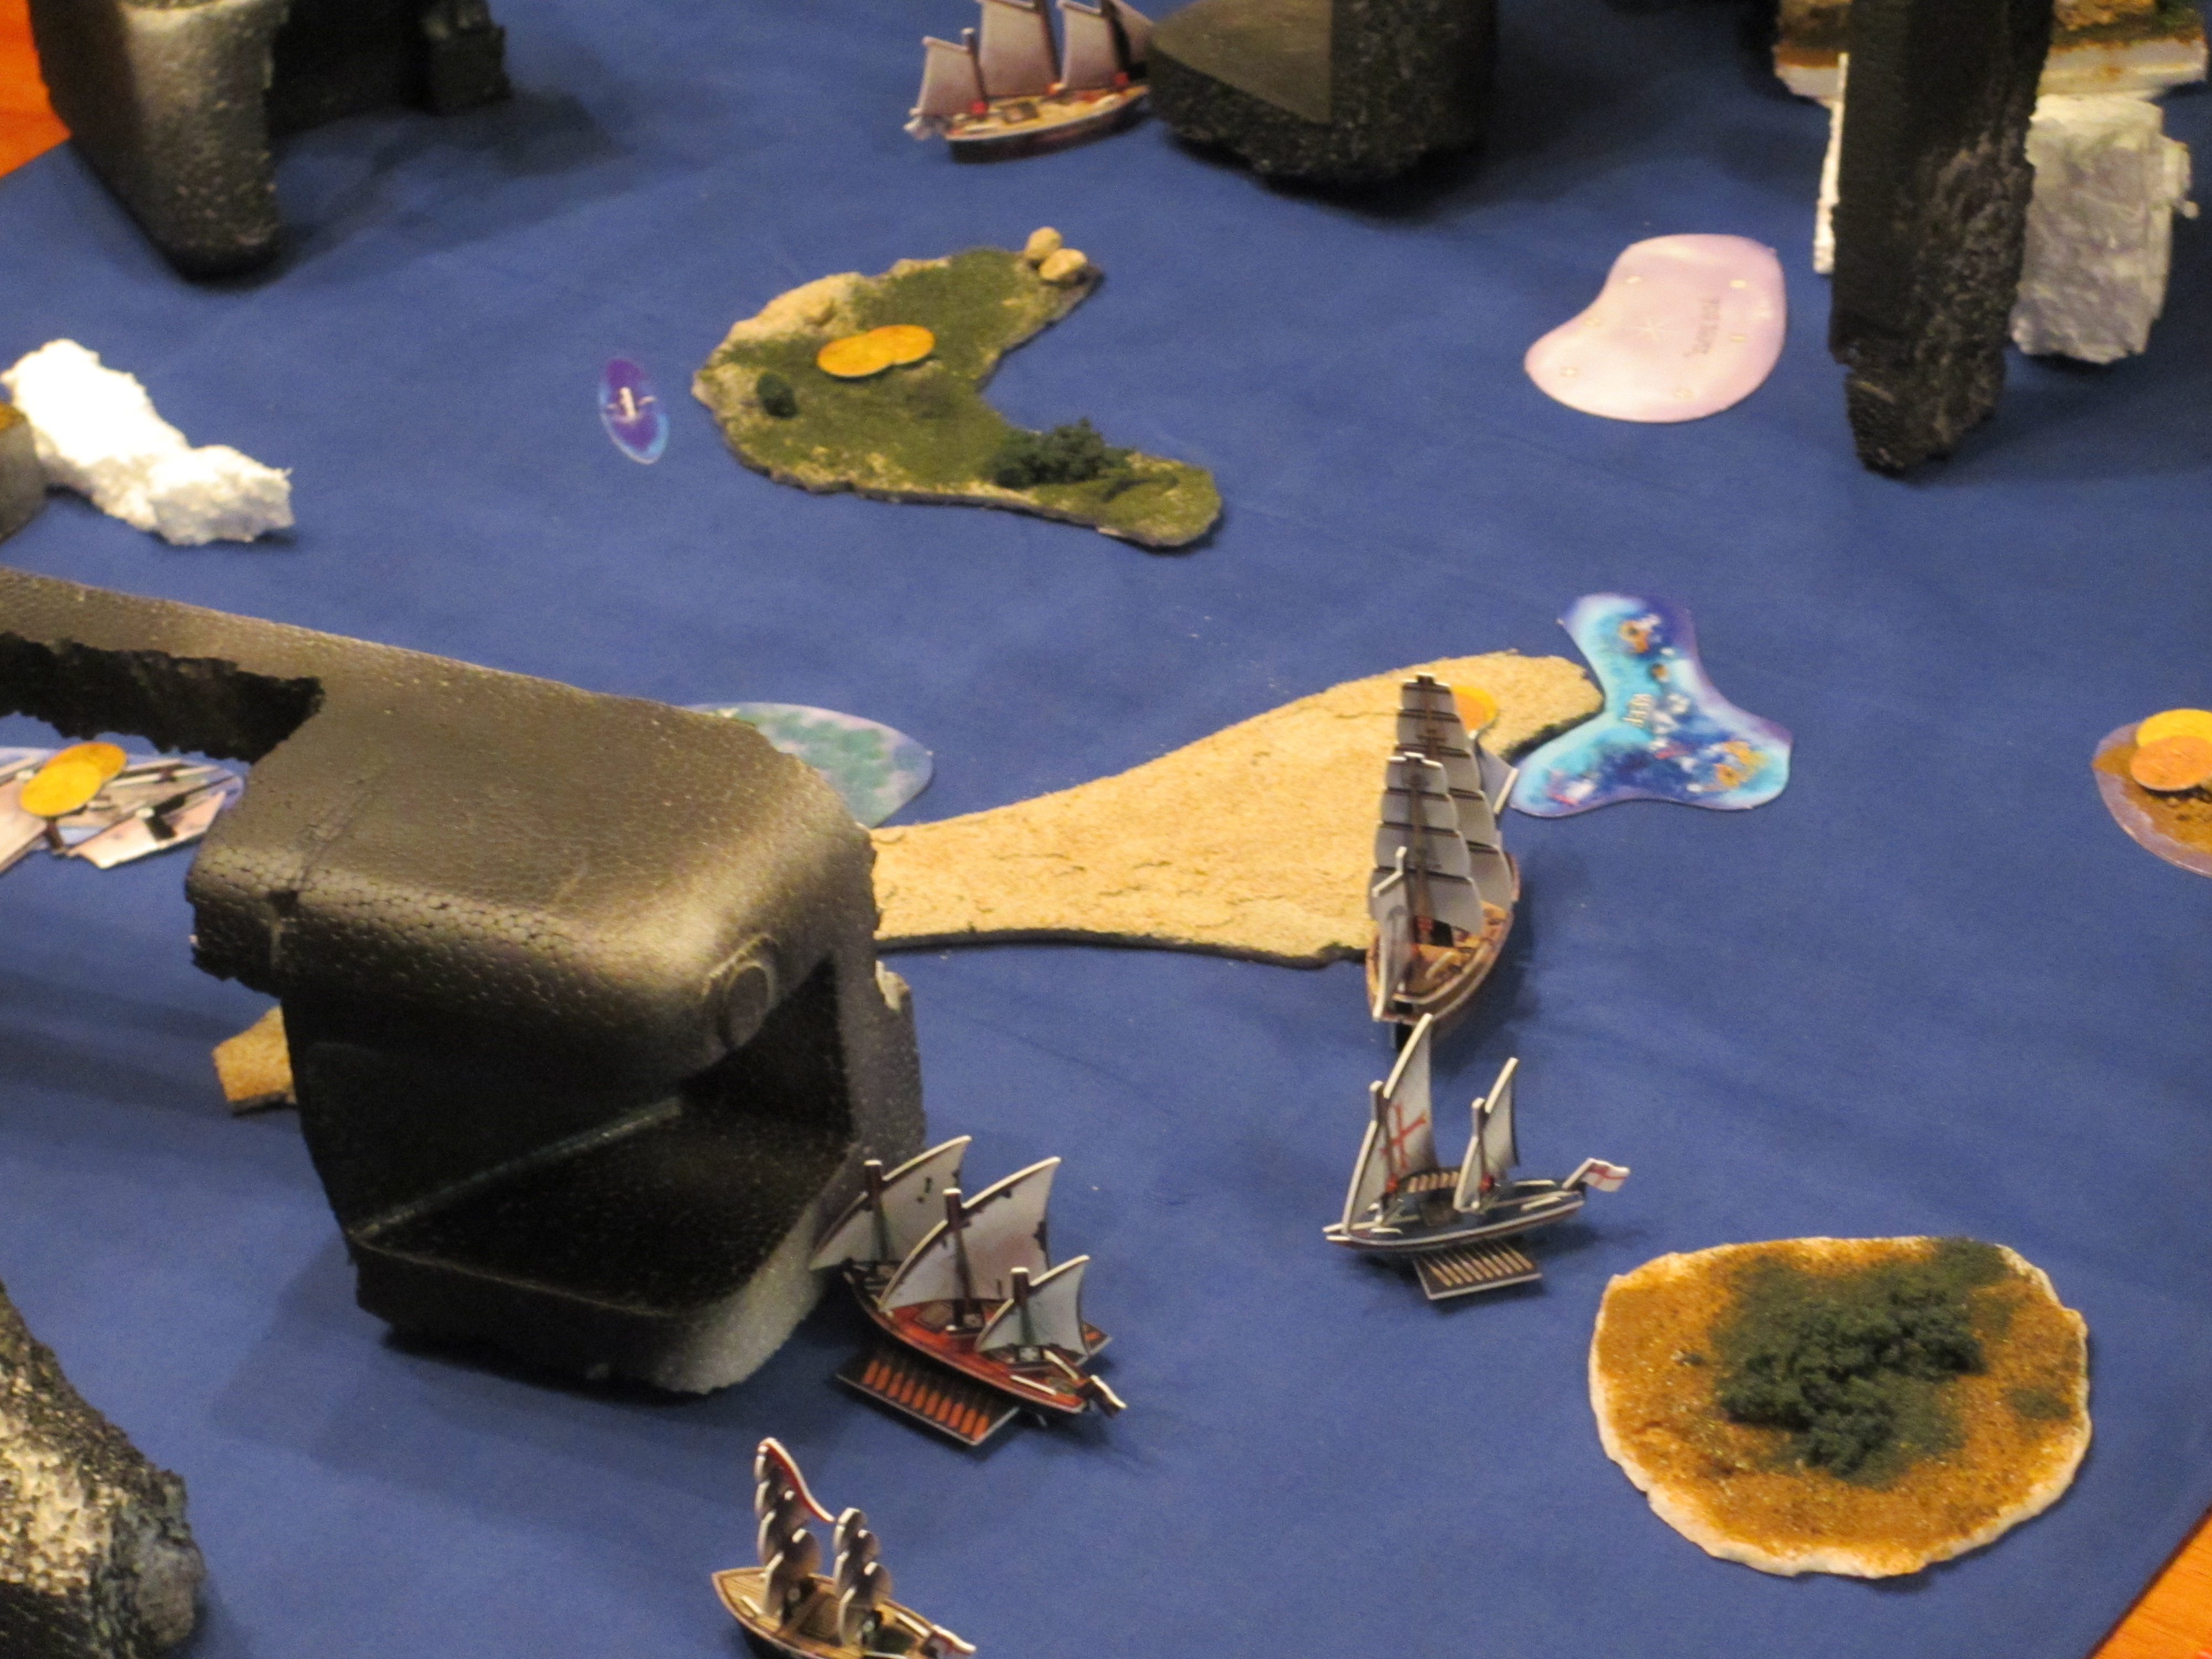 New Islands and Terrain Used - August 2nd, 2015